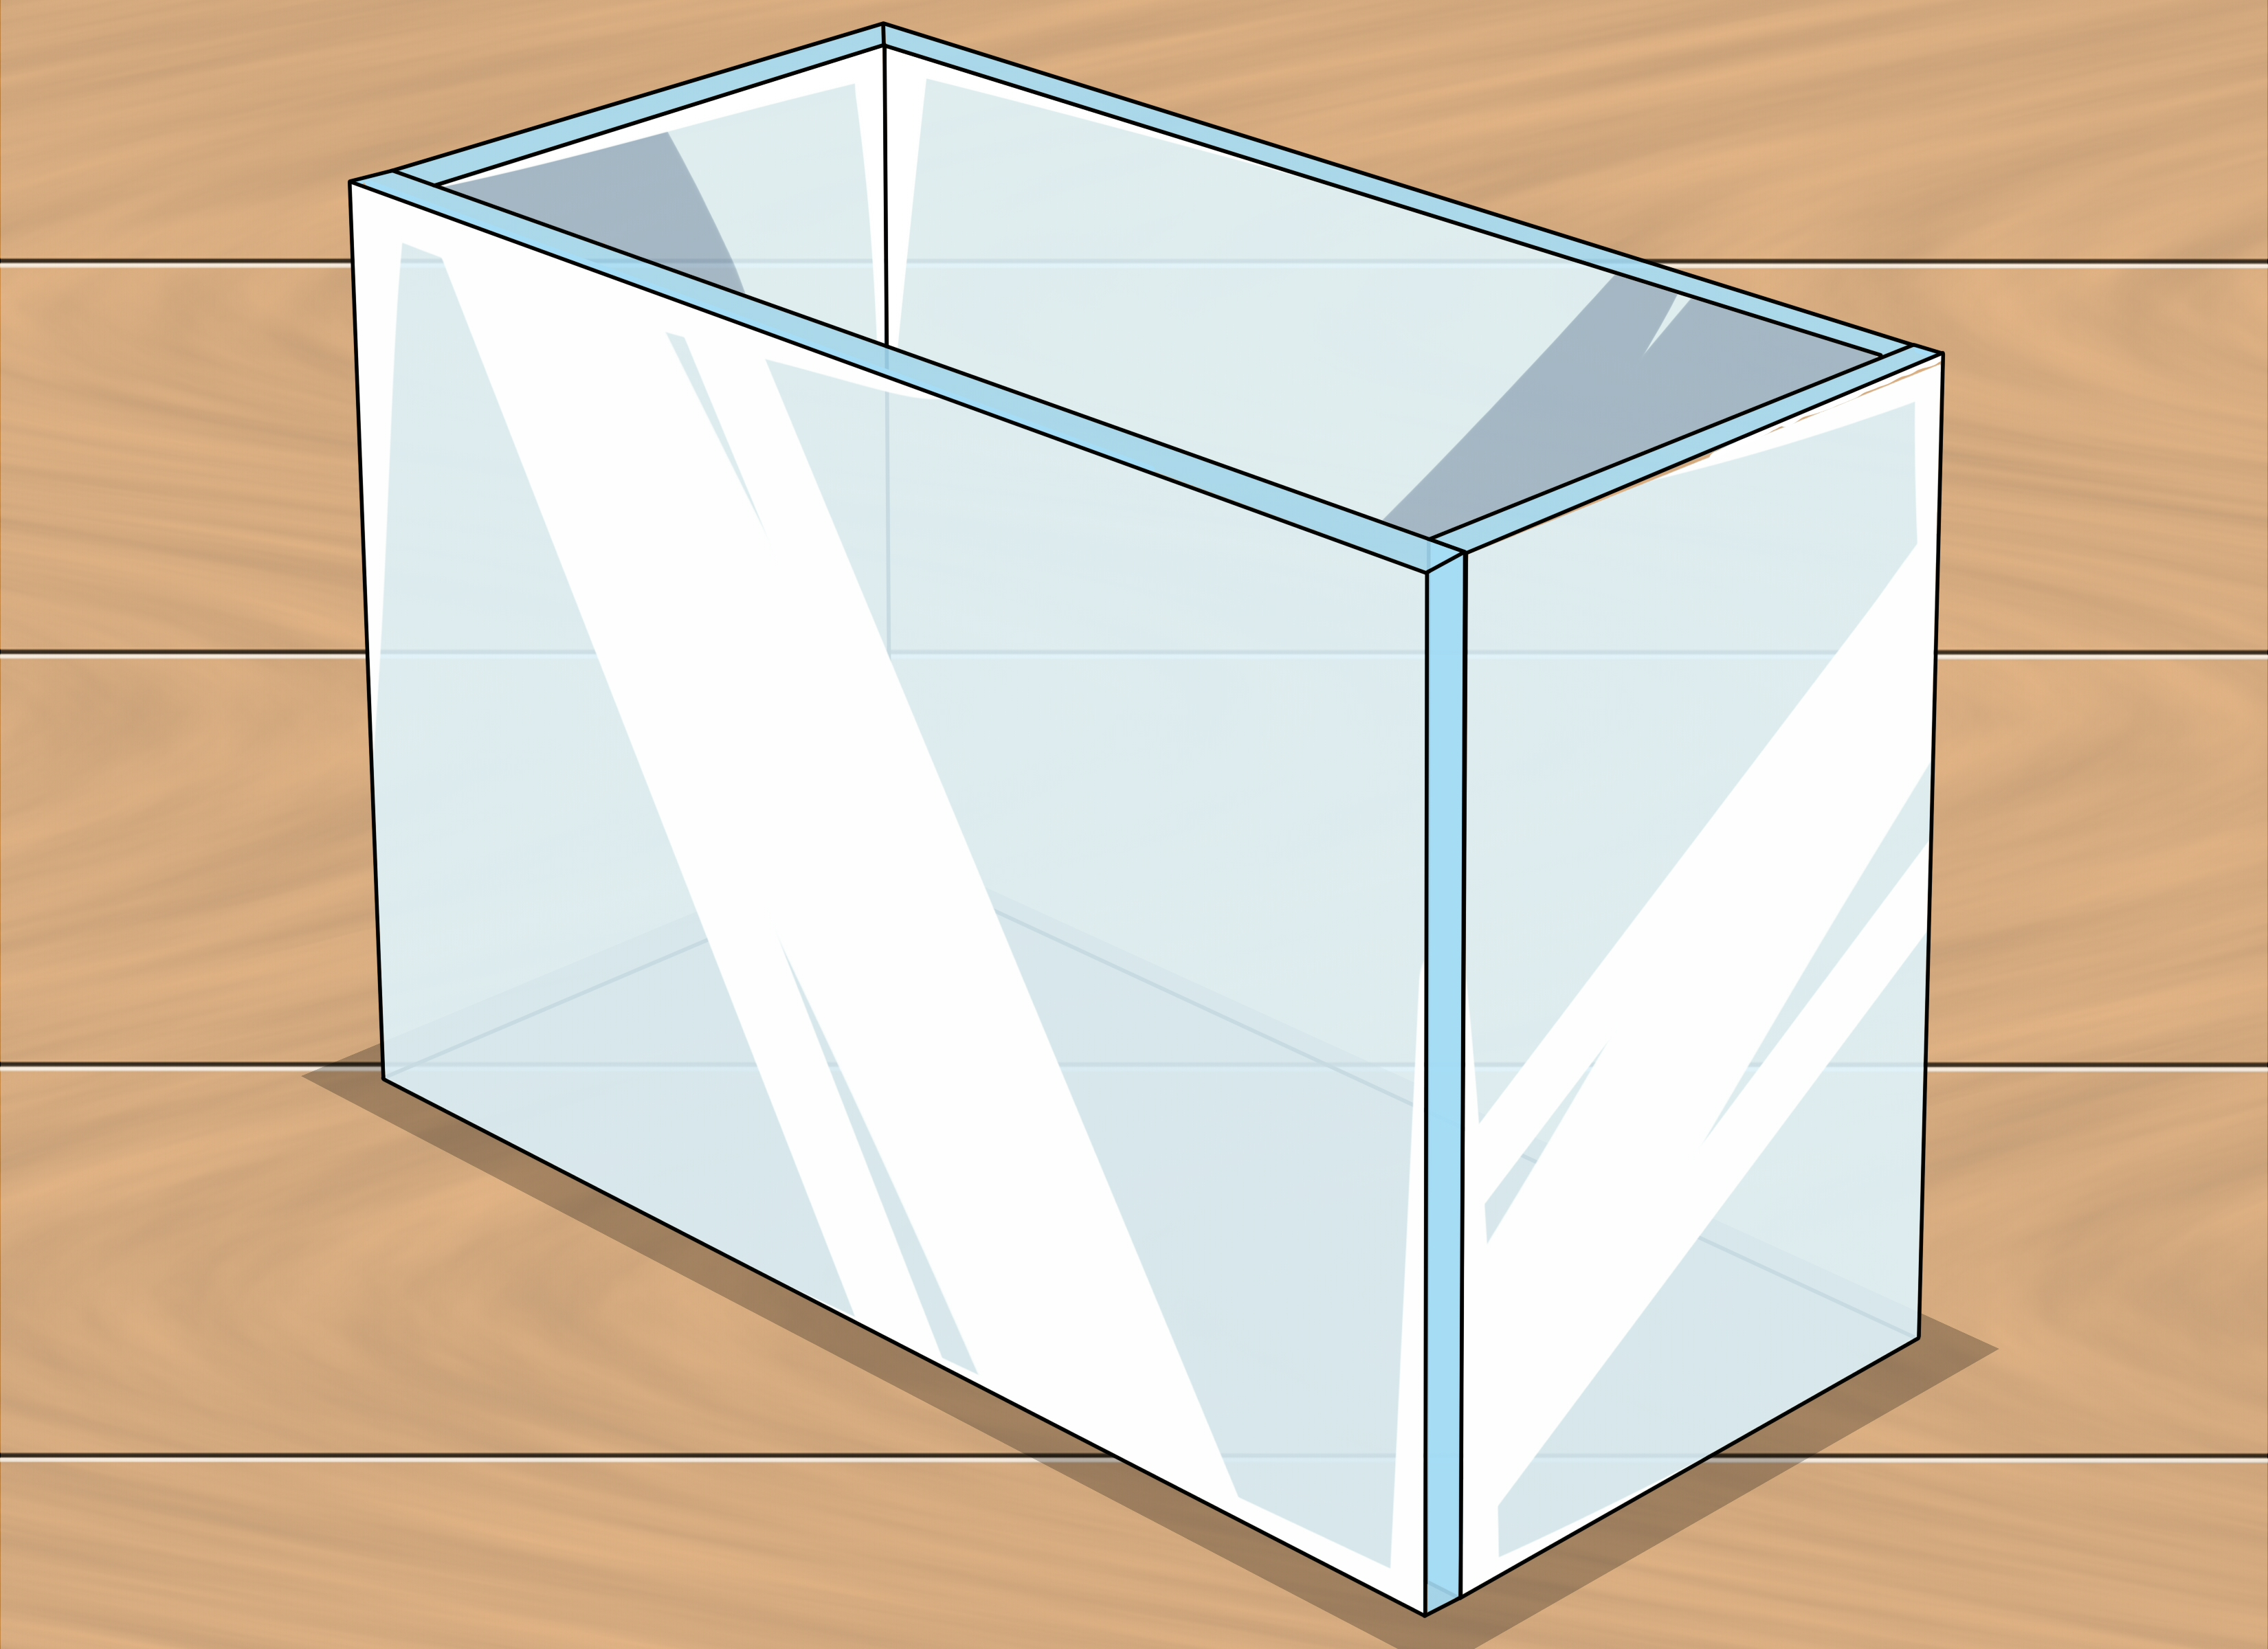 Plexi Glas How To Glue Plexiglas: 9 Steps (with Pictures) - Wikihow